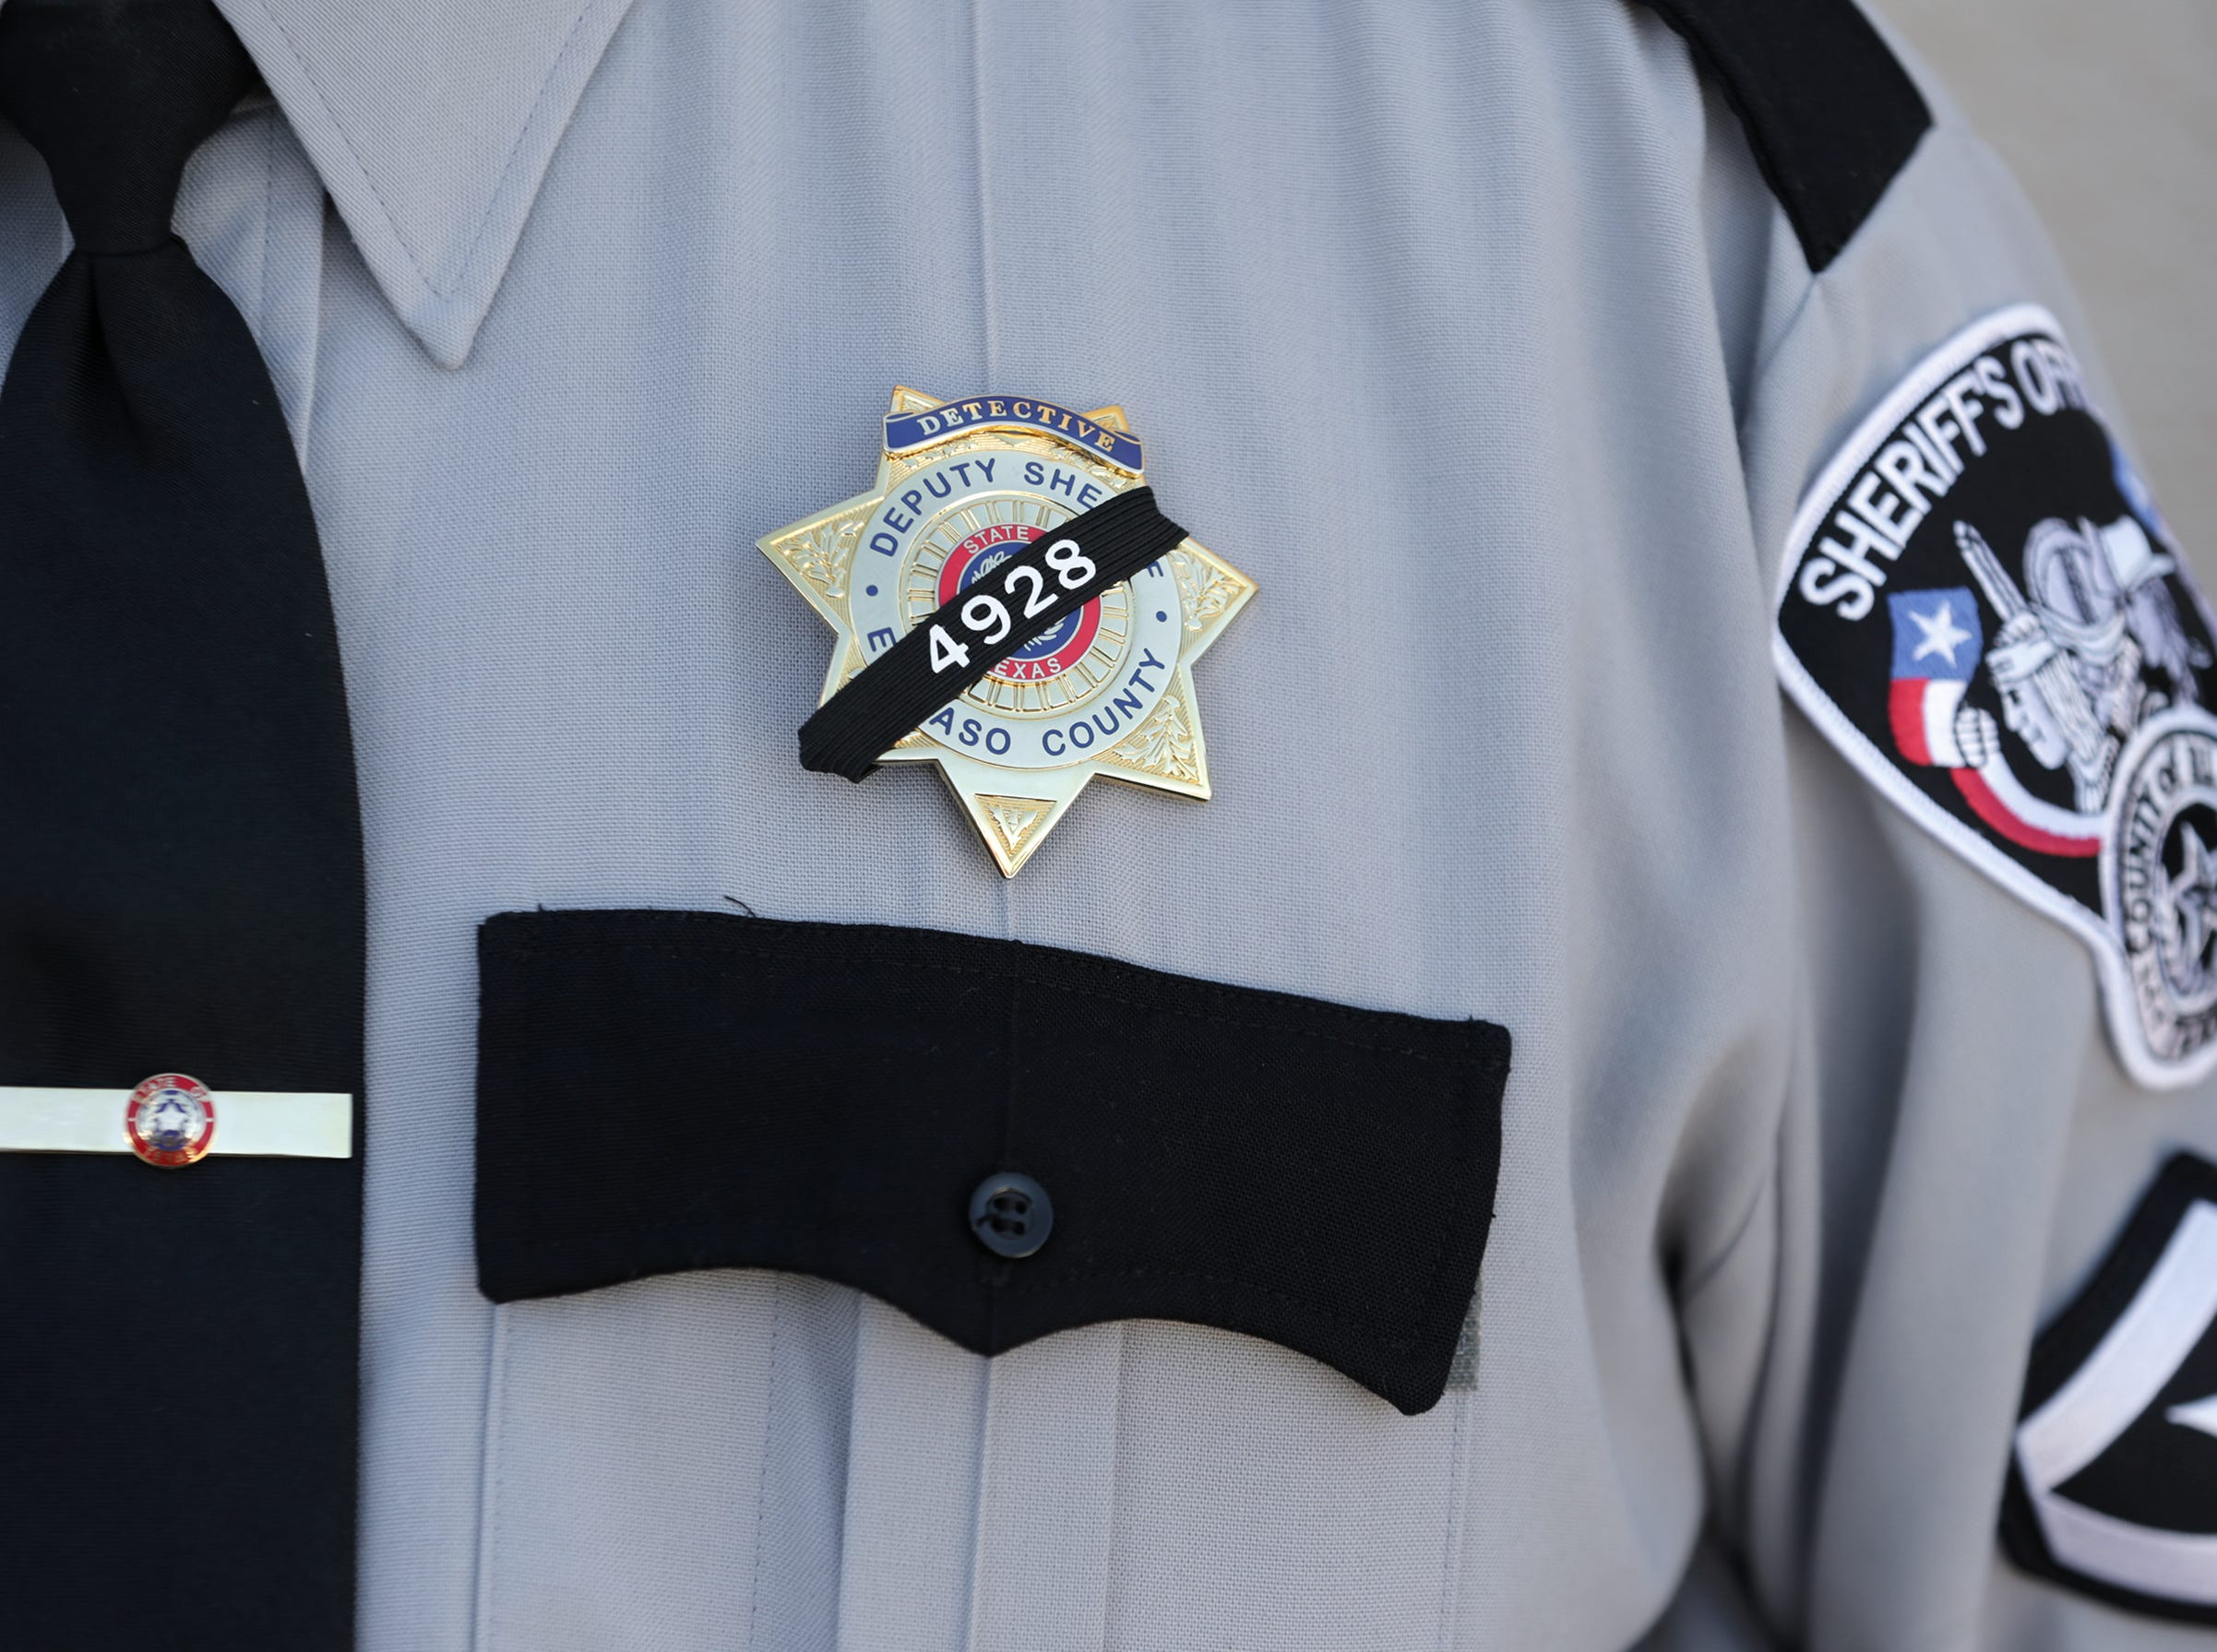 The El Paso County Sheriff's Office held its annual memorial Tuesday, May 14, 2019, at its headquarters in east El Paso. Deputy Peter Herrera's name was added to the County Law Enforcement Memorial this year after he was shot and killed during a traffic stop in San Elizario.